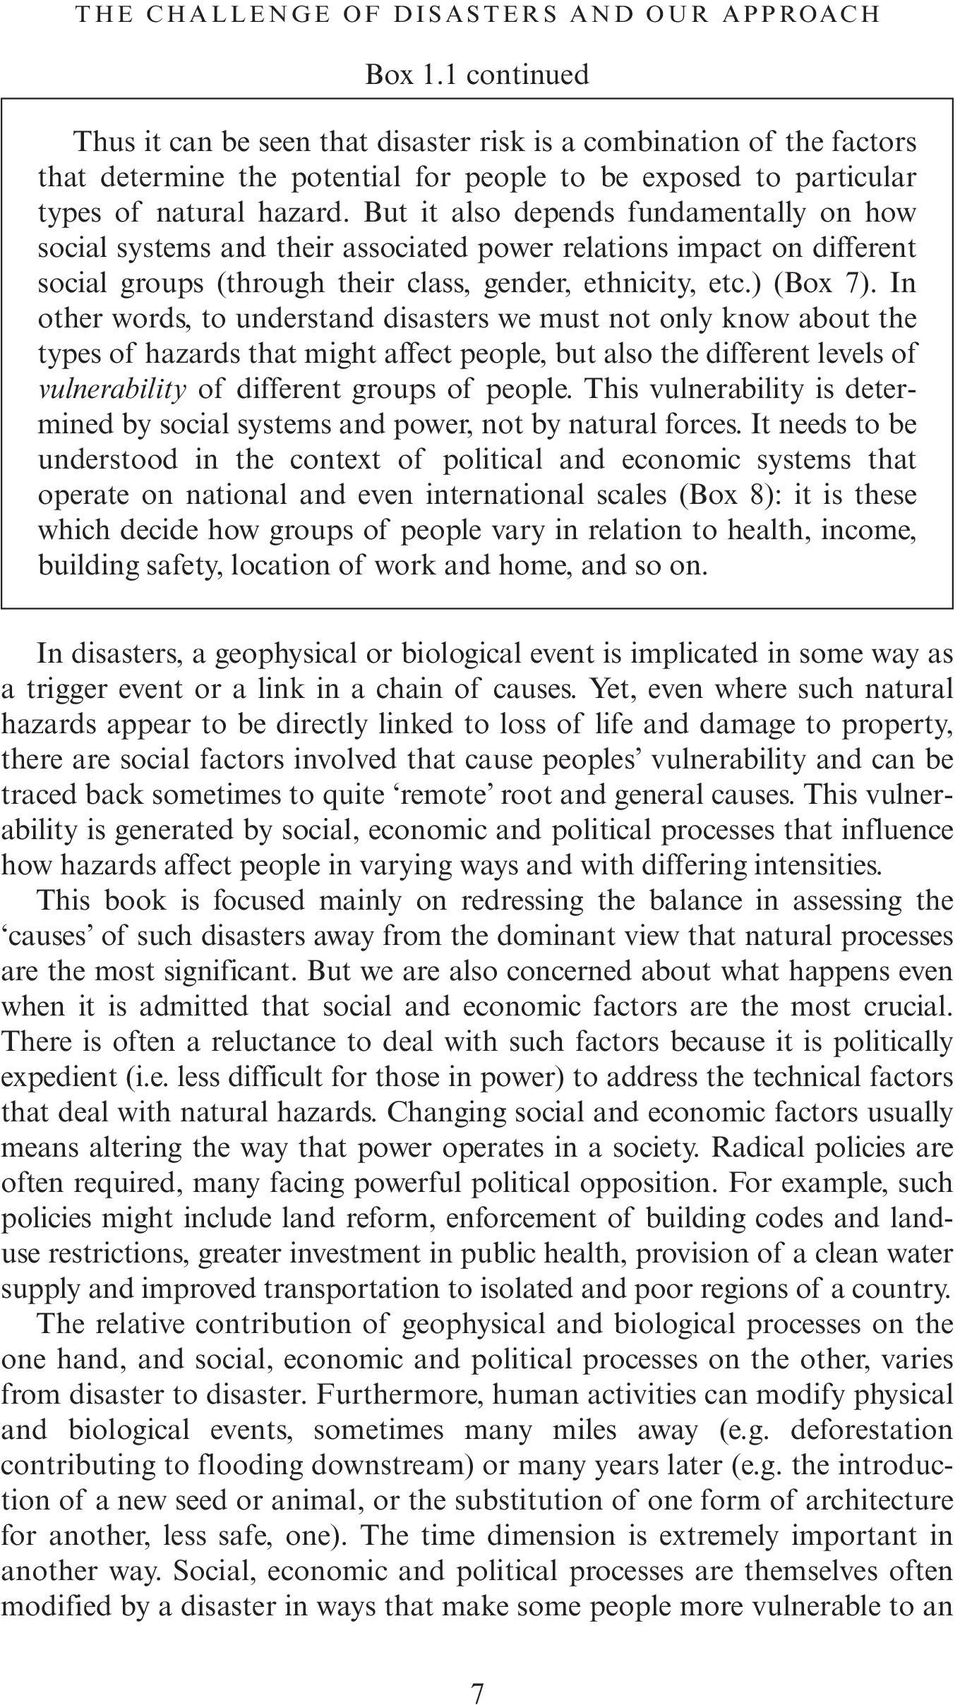 But it also depends fundamentally on how social systems and their associated power relations impact on different social groups (through their class, gender, ethnicity, etc.) (Box 7).